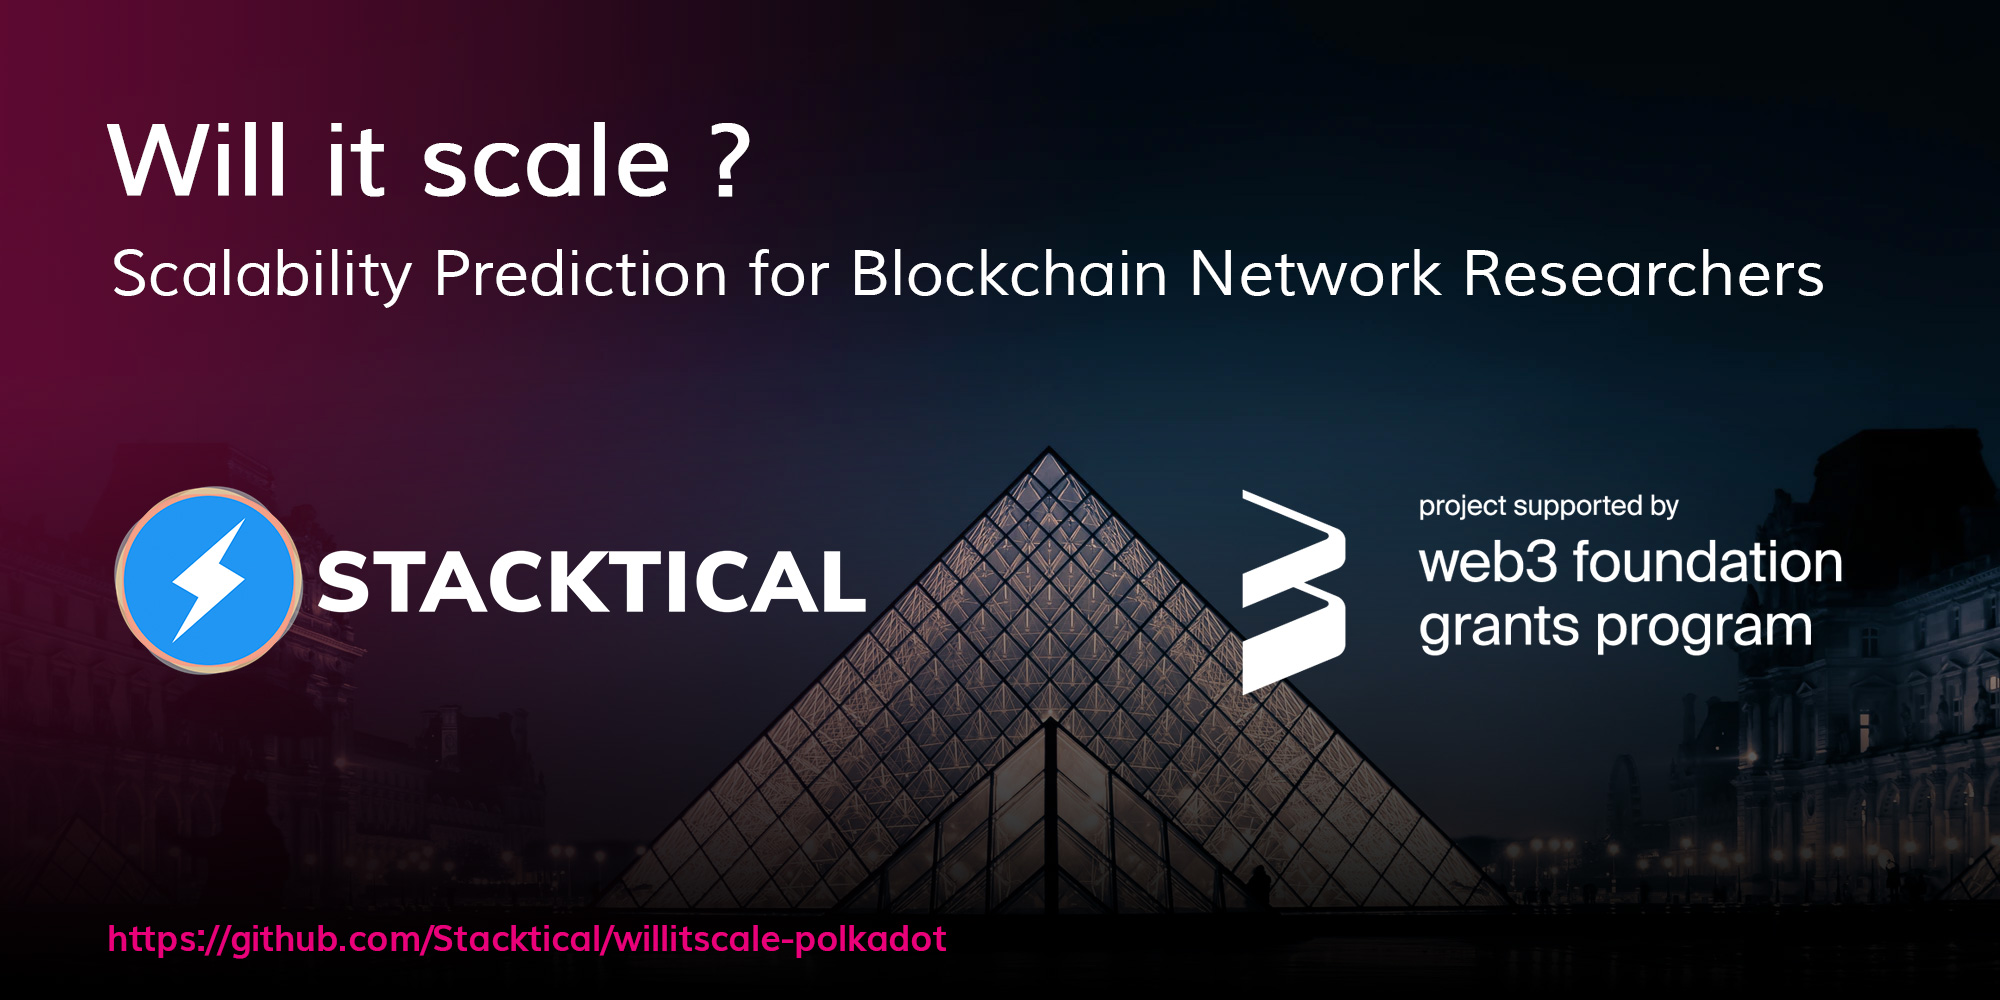 Stacktical receives web3 foundation grant to predict the scalability of Polkadot and Substrate blockchains